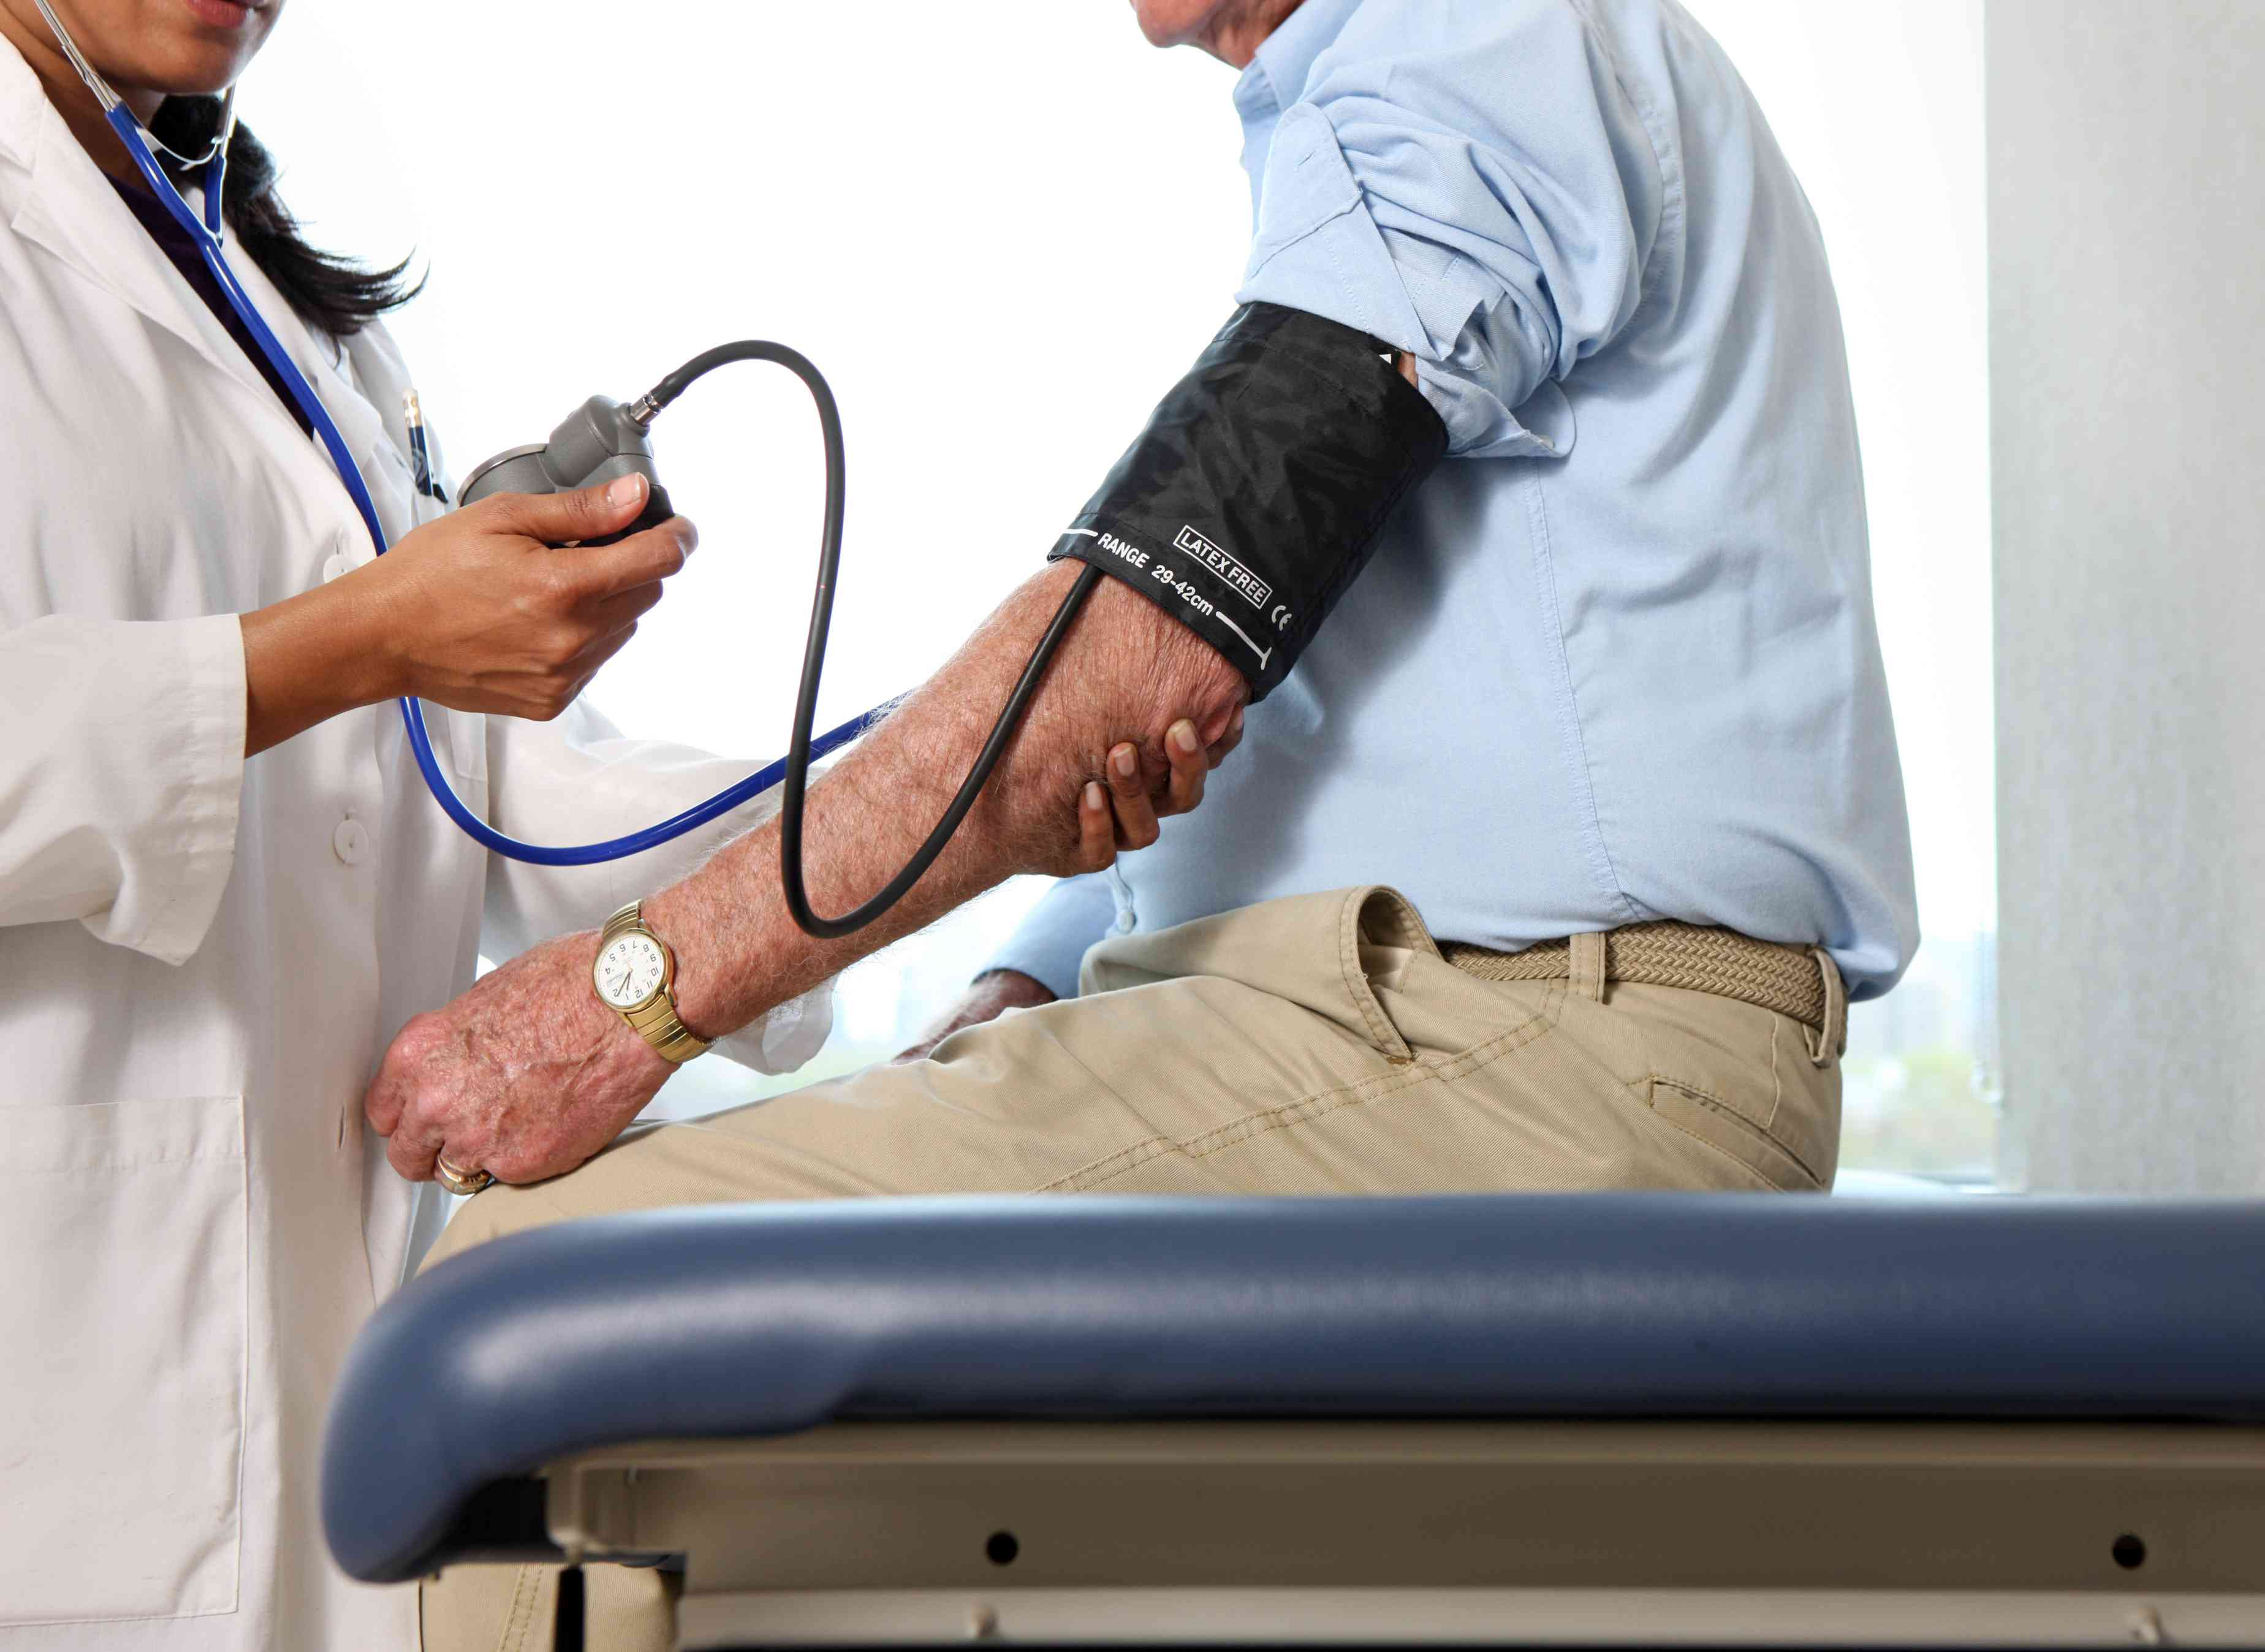 A doctor taking the blood pressure of a patient